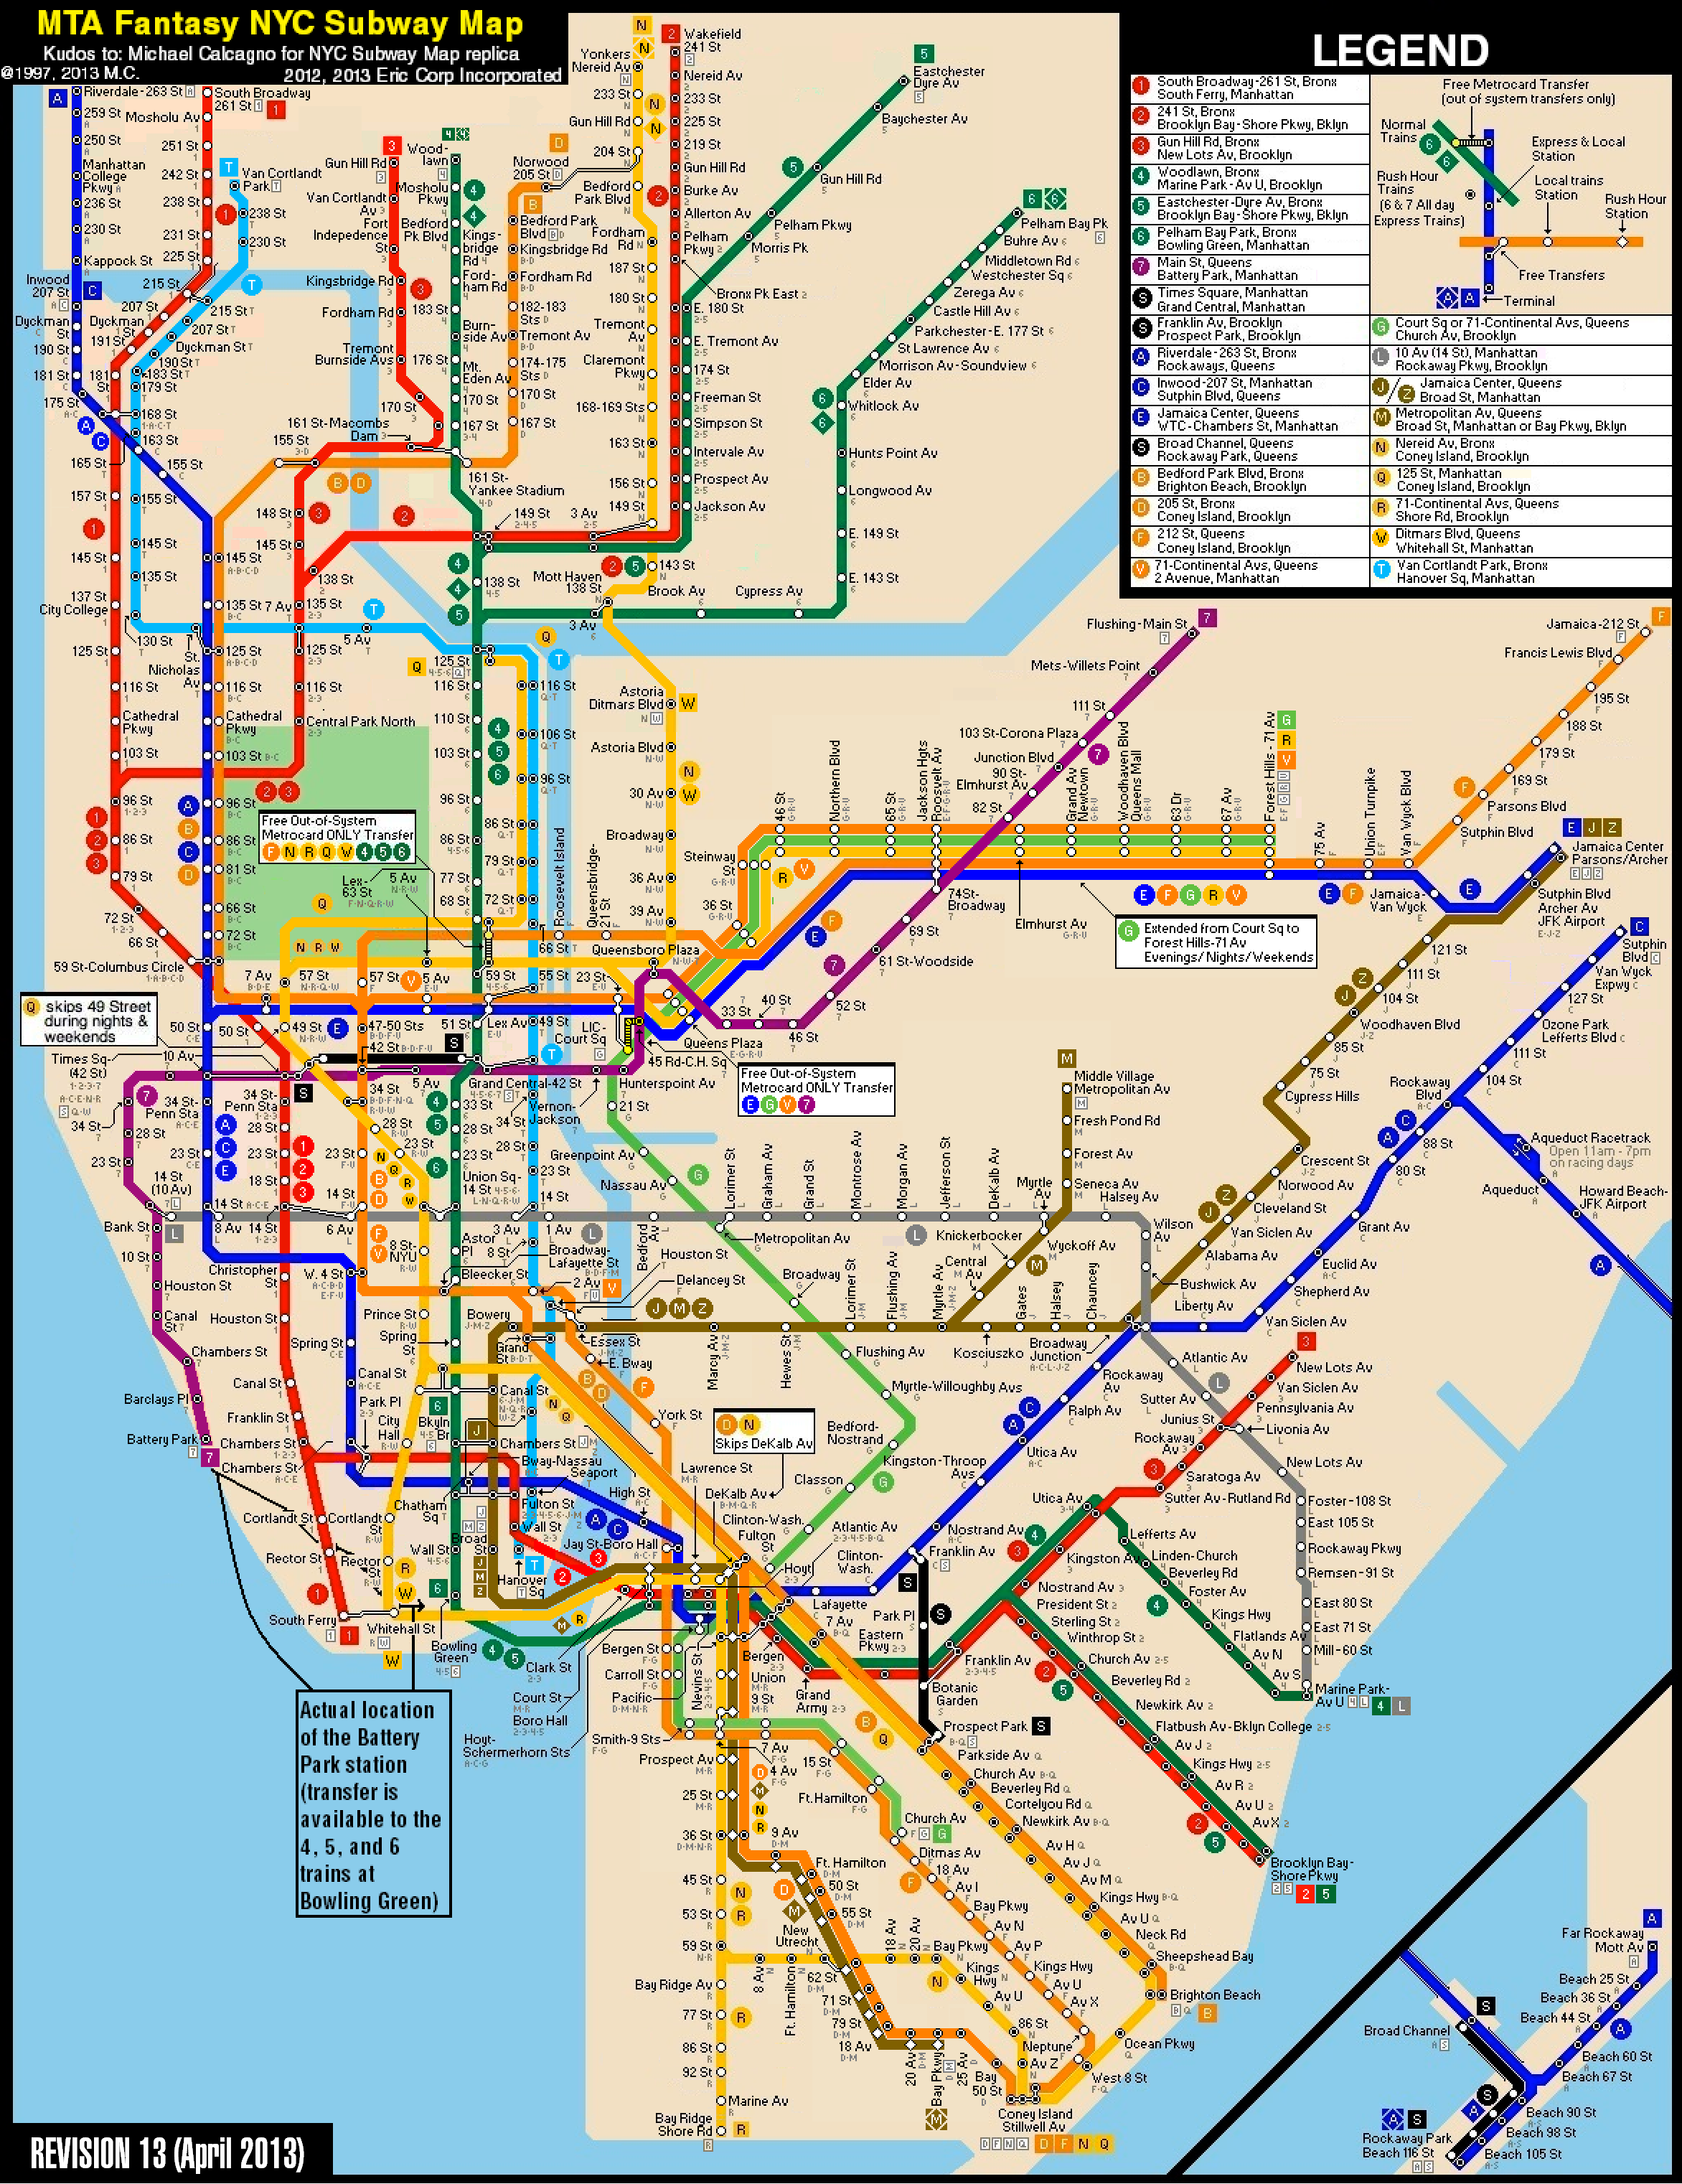 ... City Subway Fantasy Map ...